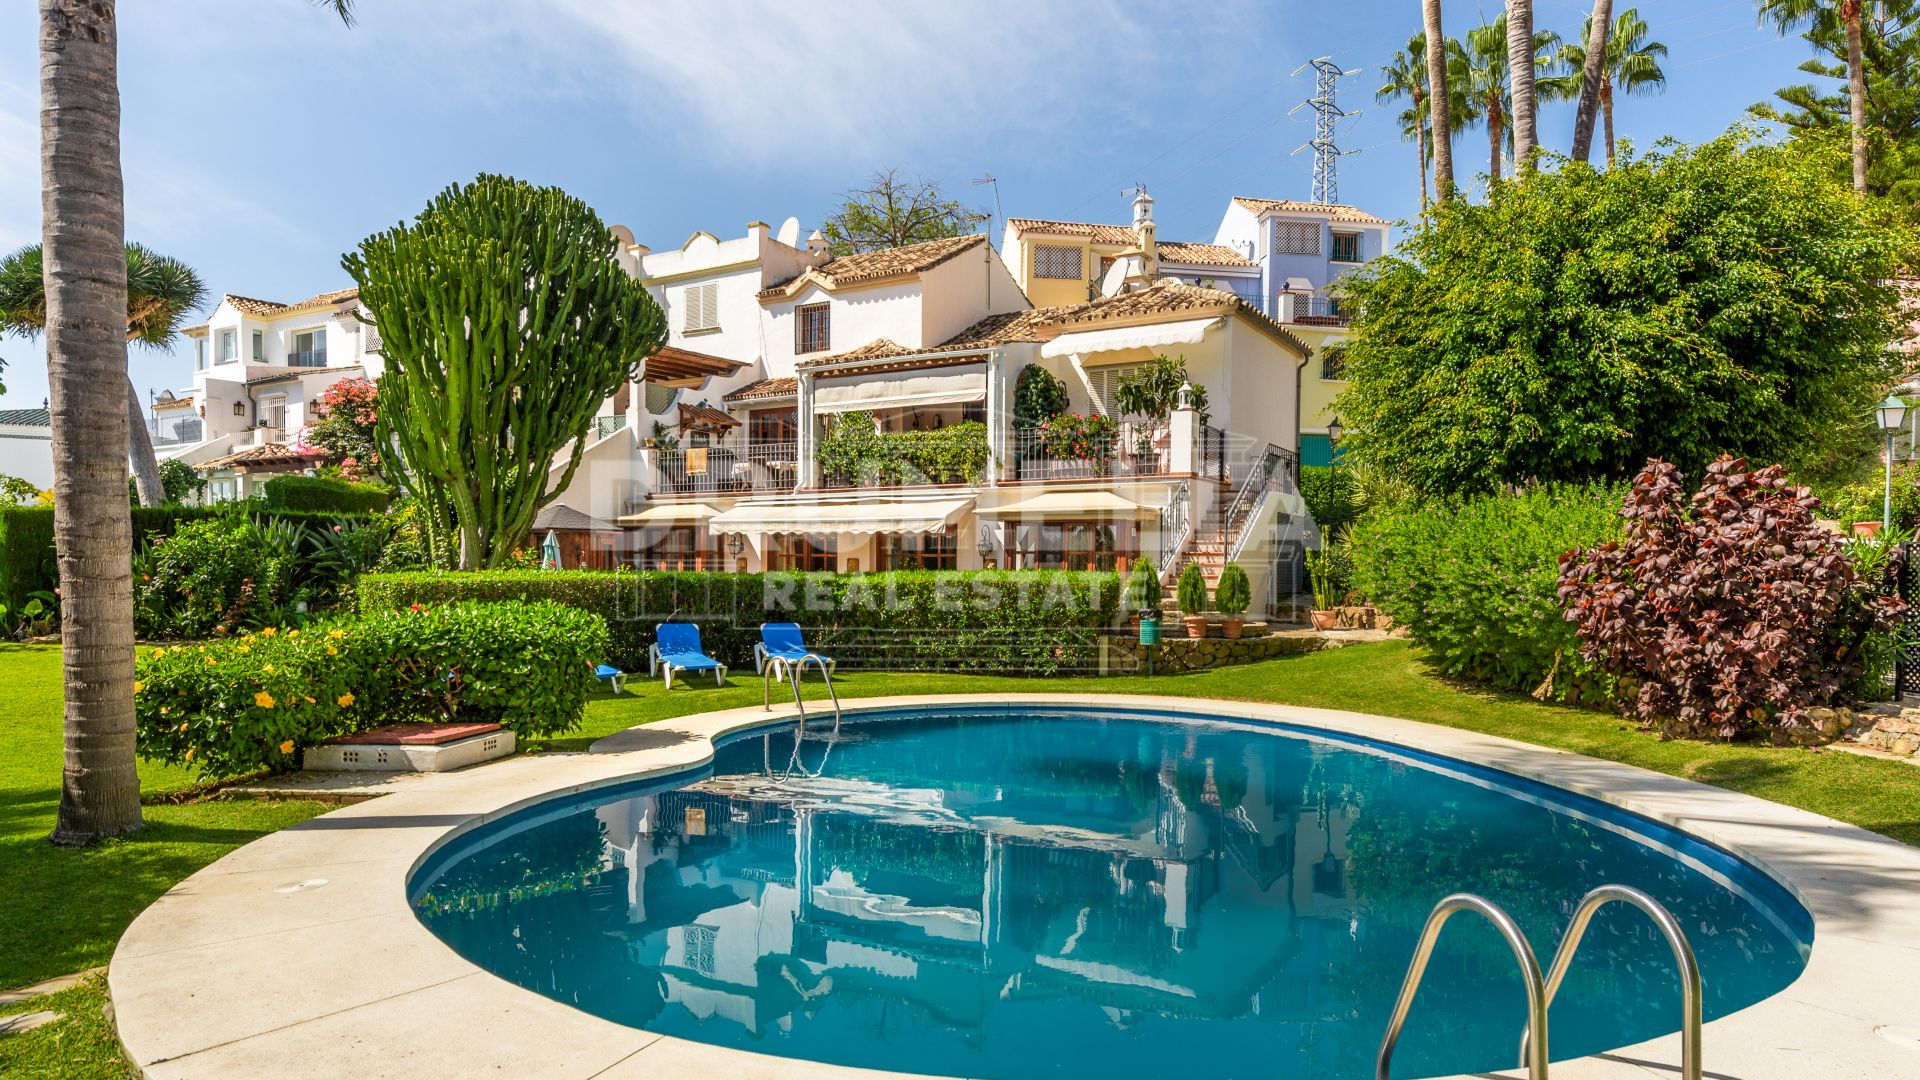 Marbella Golden Mile, Remarkable Semi-Detached Luxurious House in Marbella Hill Club, Golden Mile, Marbella.